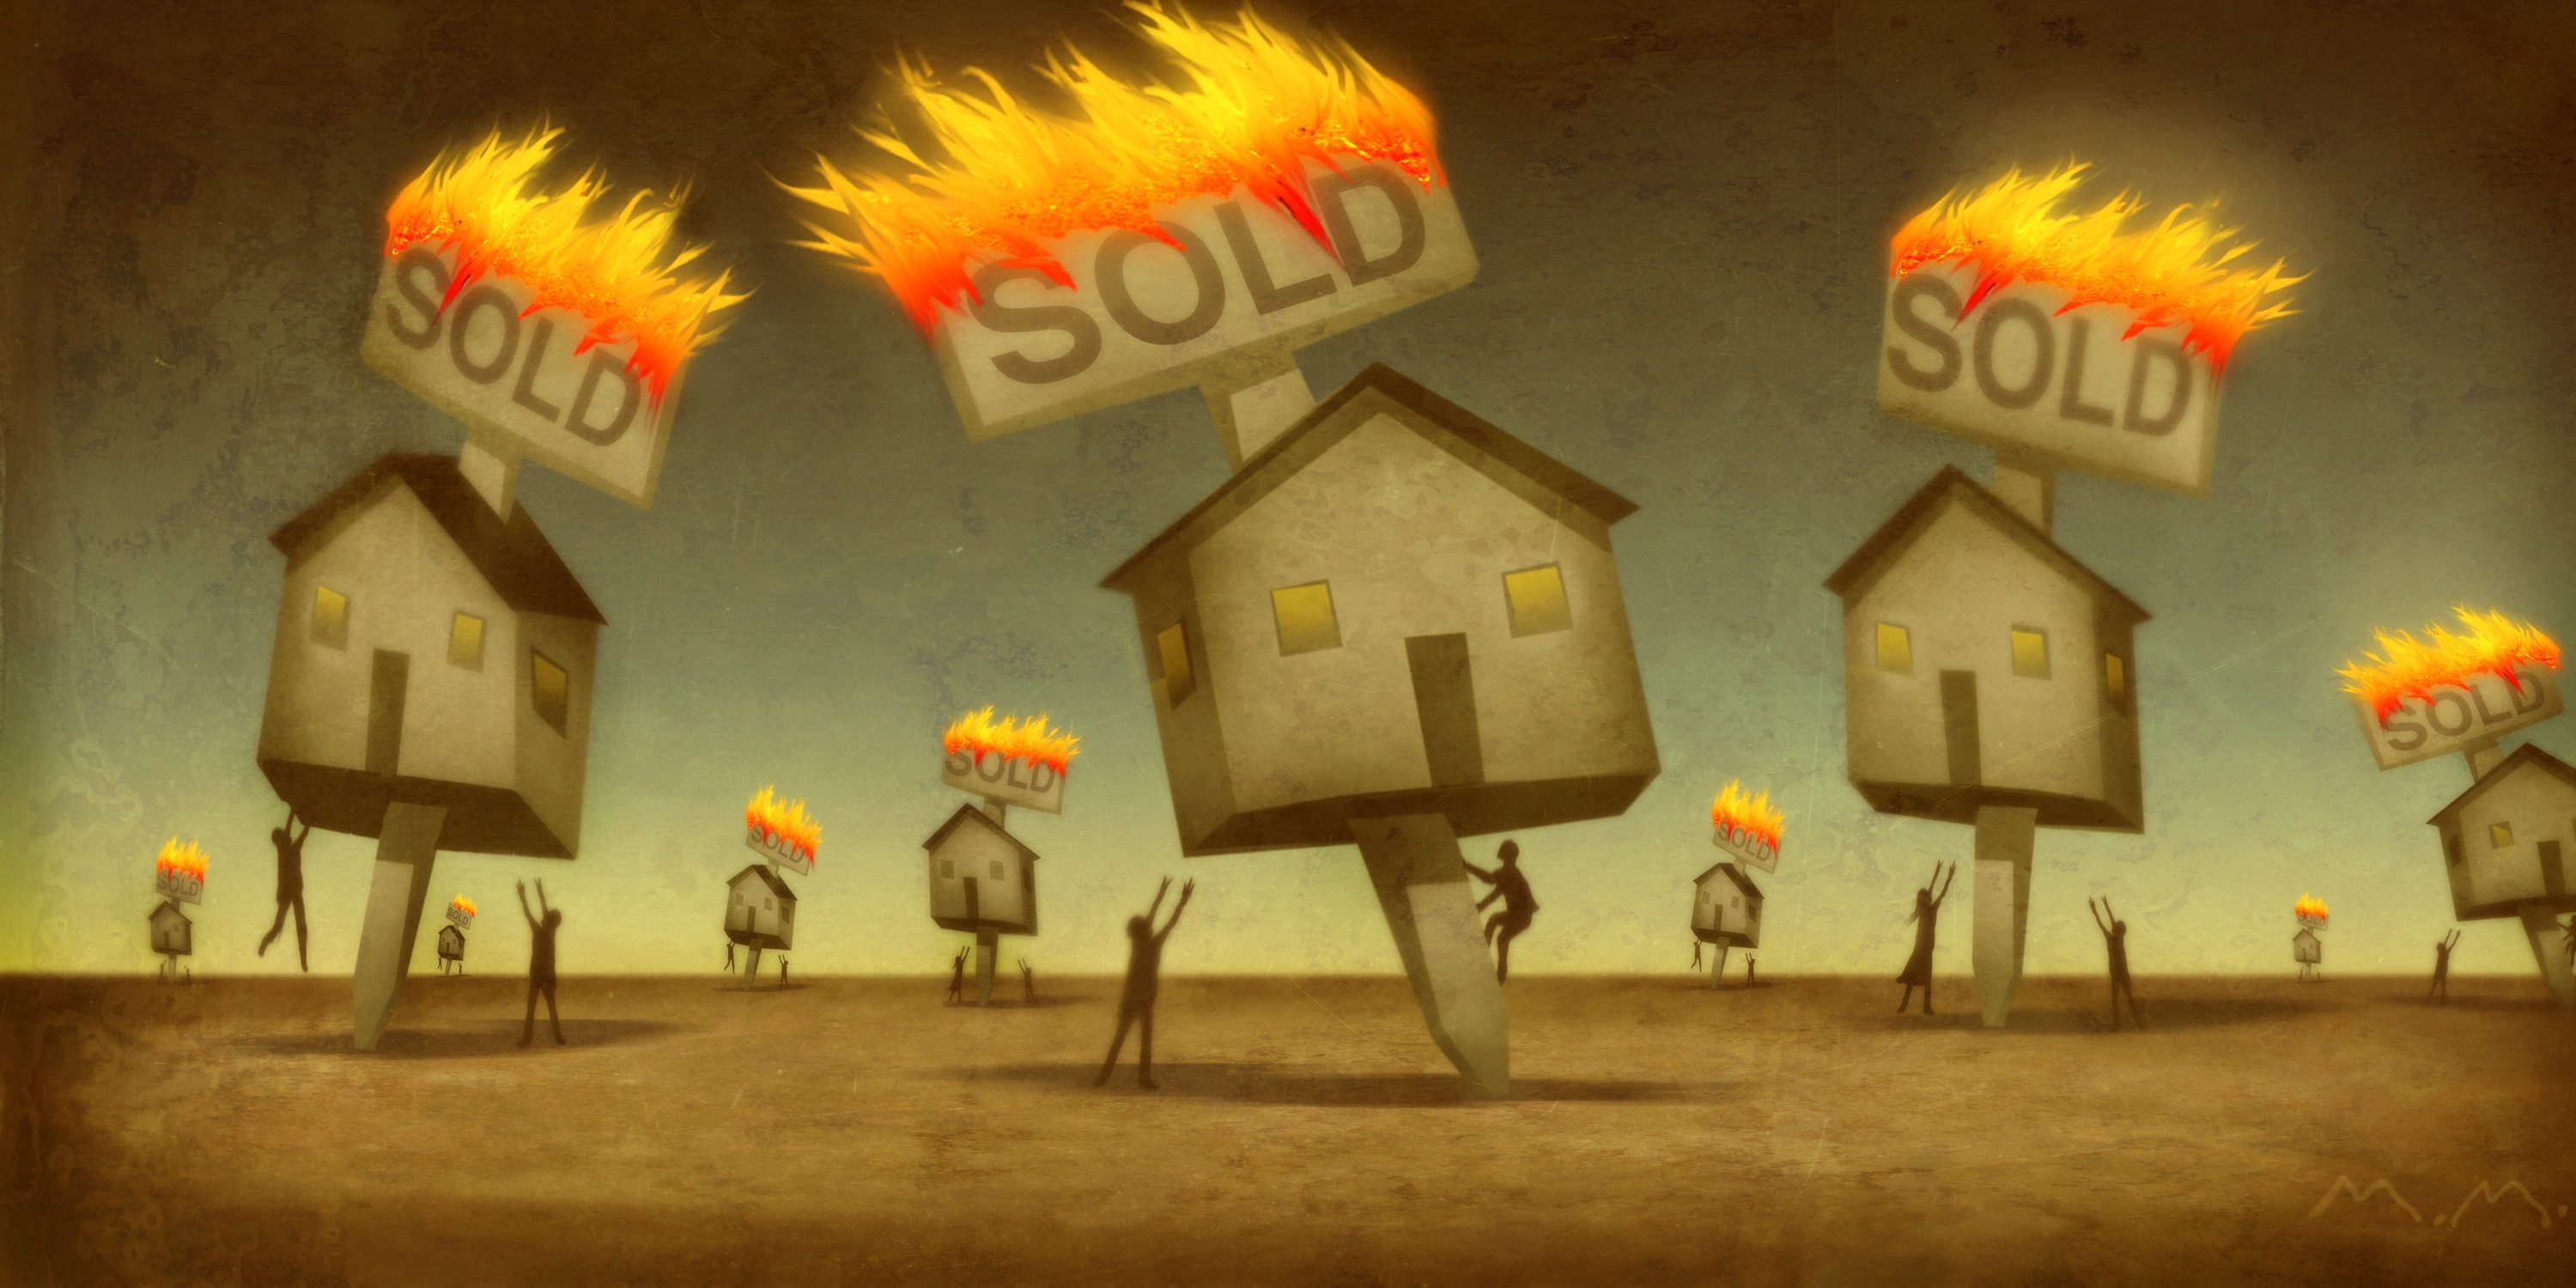 Real Estate Market on Fire